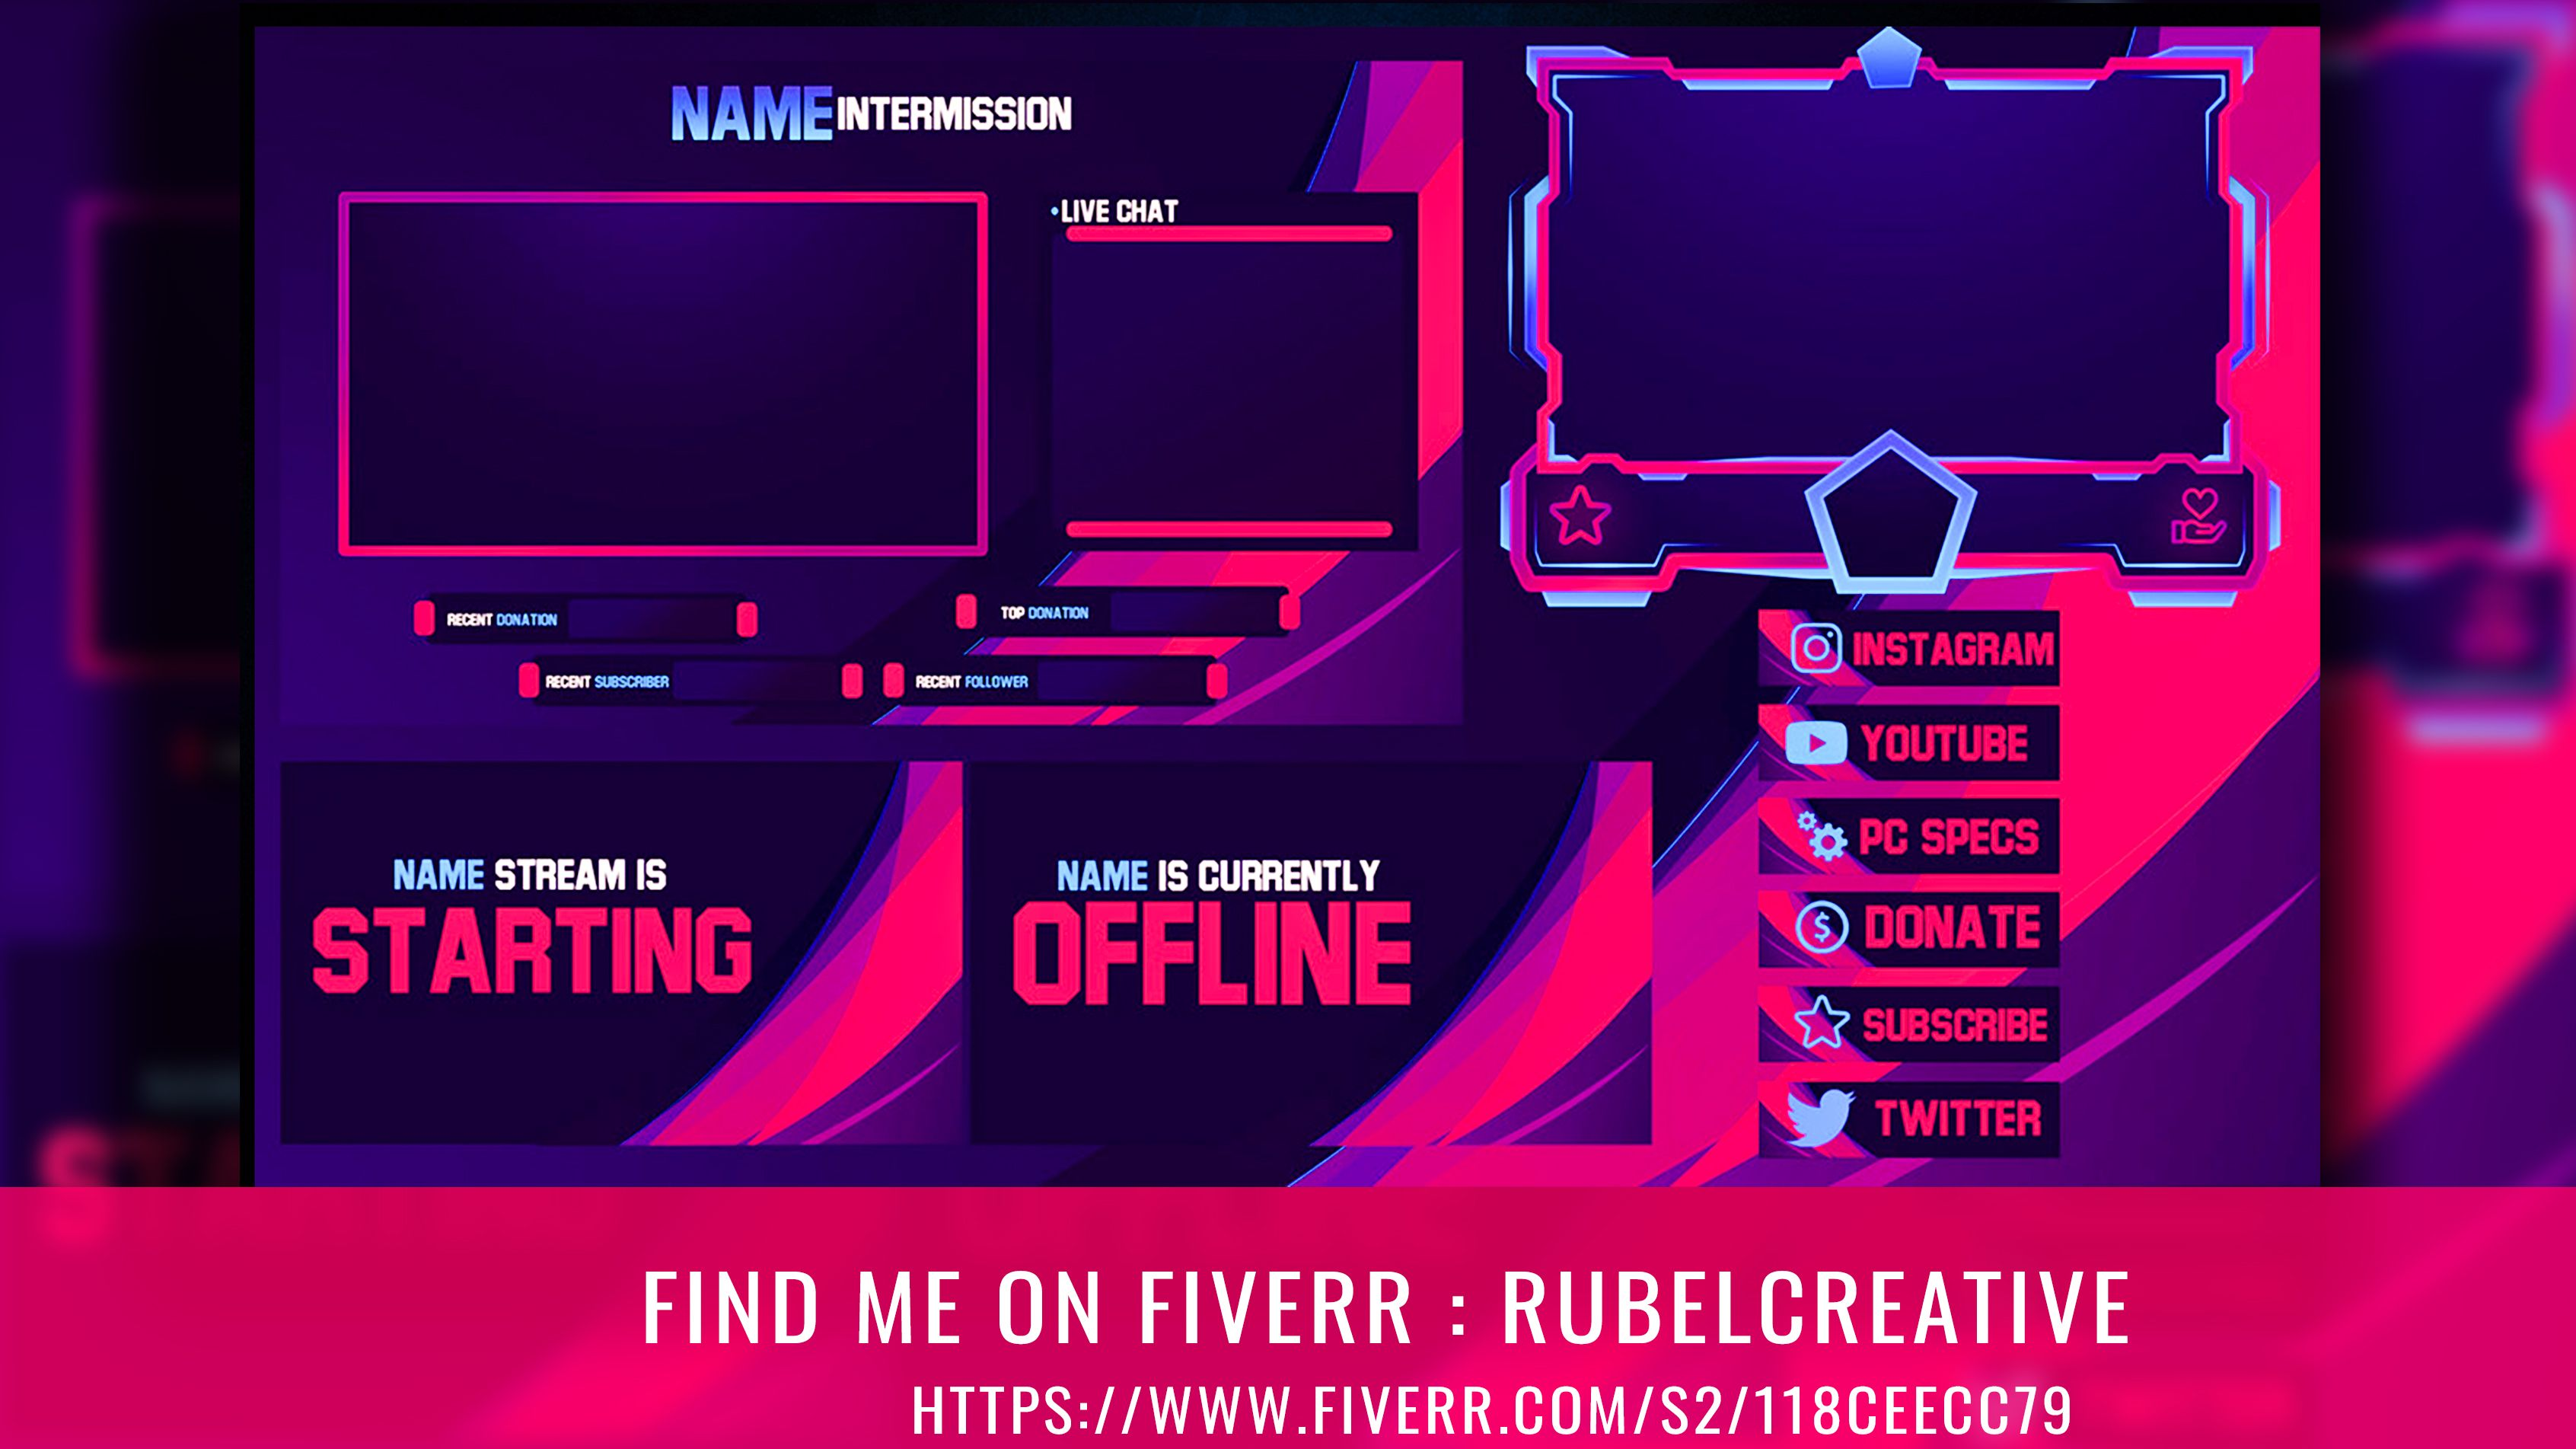 Rubelcreative I Will Design Twitch Overlay For Your Stream Platform For 10 On Fiverr Com In 2020 Streaming Overlays Twitch